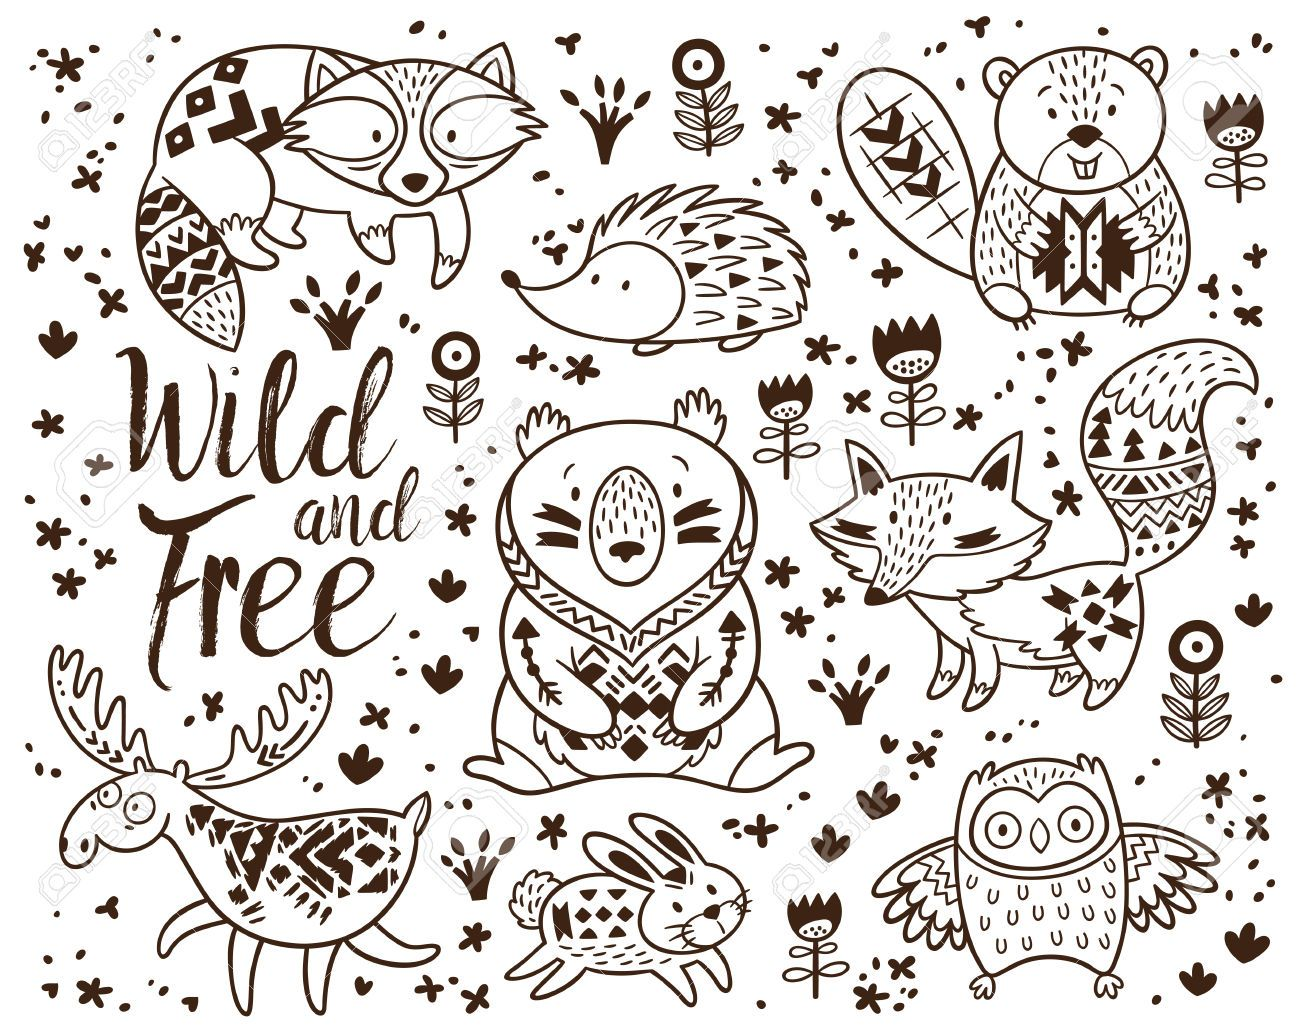 Pin By Beth Bouchard On 1200 Sq Ft House Plans Animal Coloring Pages Animal Coloring Books Coloring Pages